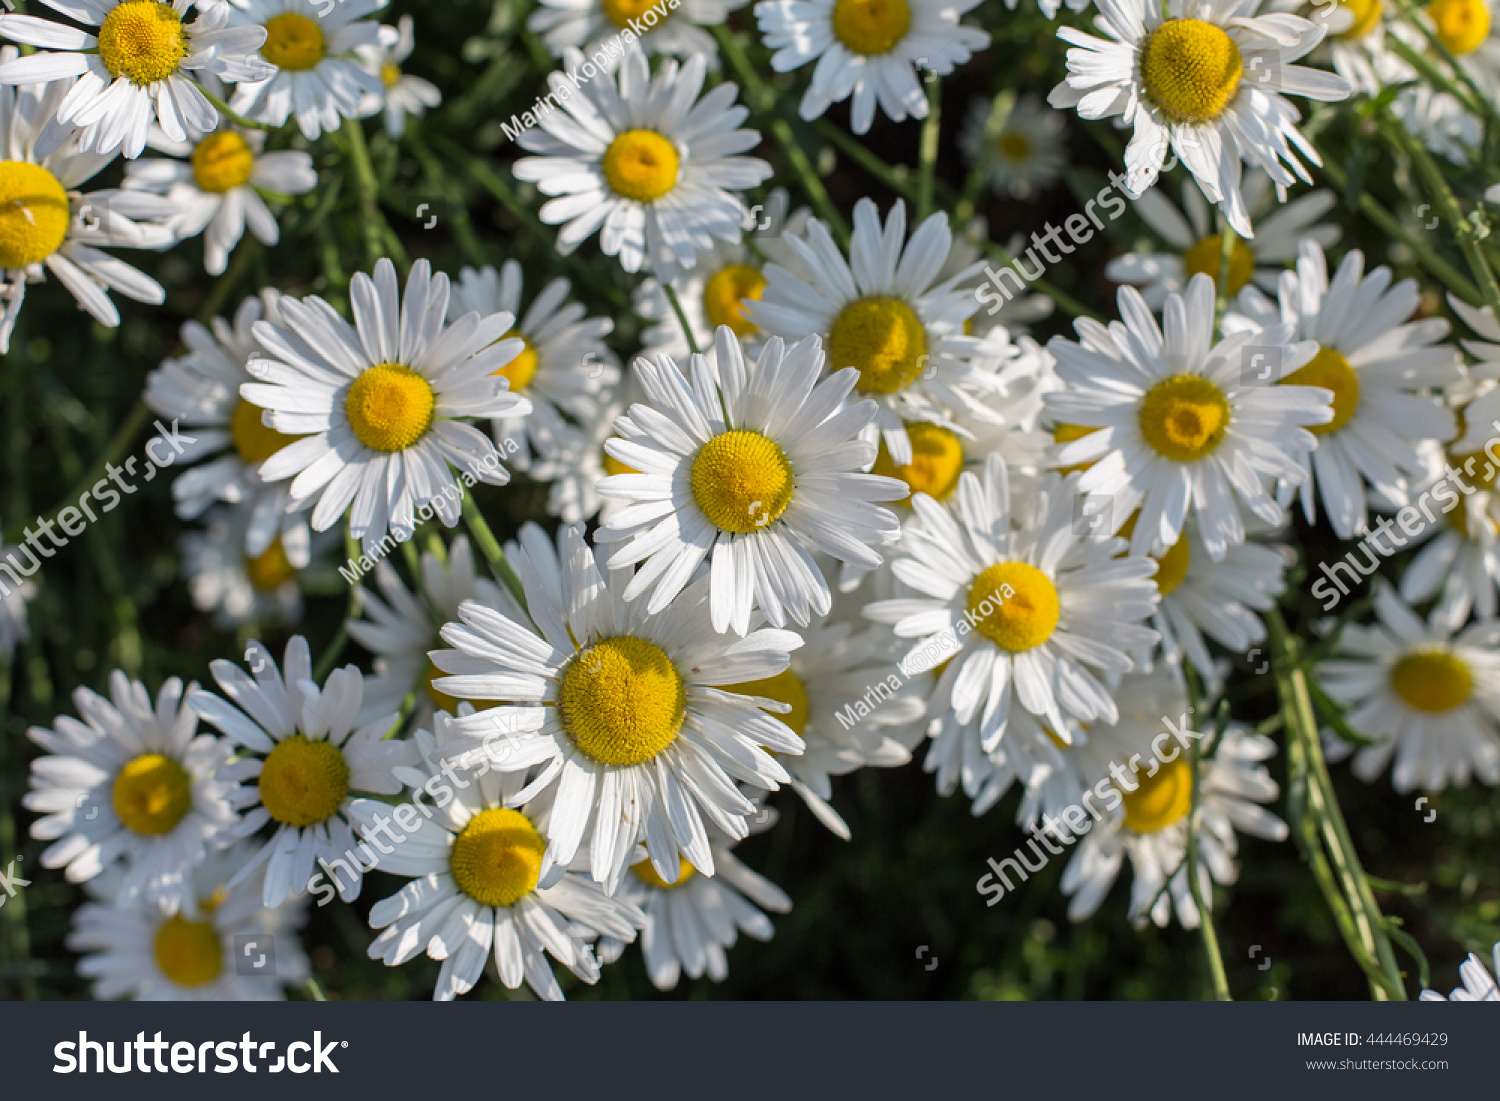 Many white flowers daisies symbol camomiles stock photo royalty many of white flowers daisies symbol camomiles as background in the nature mightylinksfo